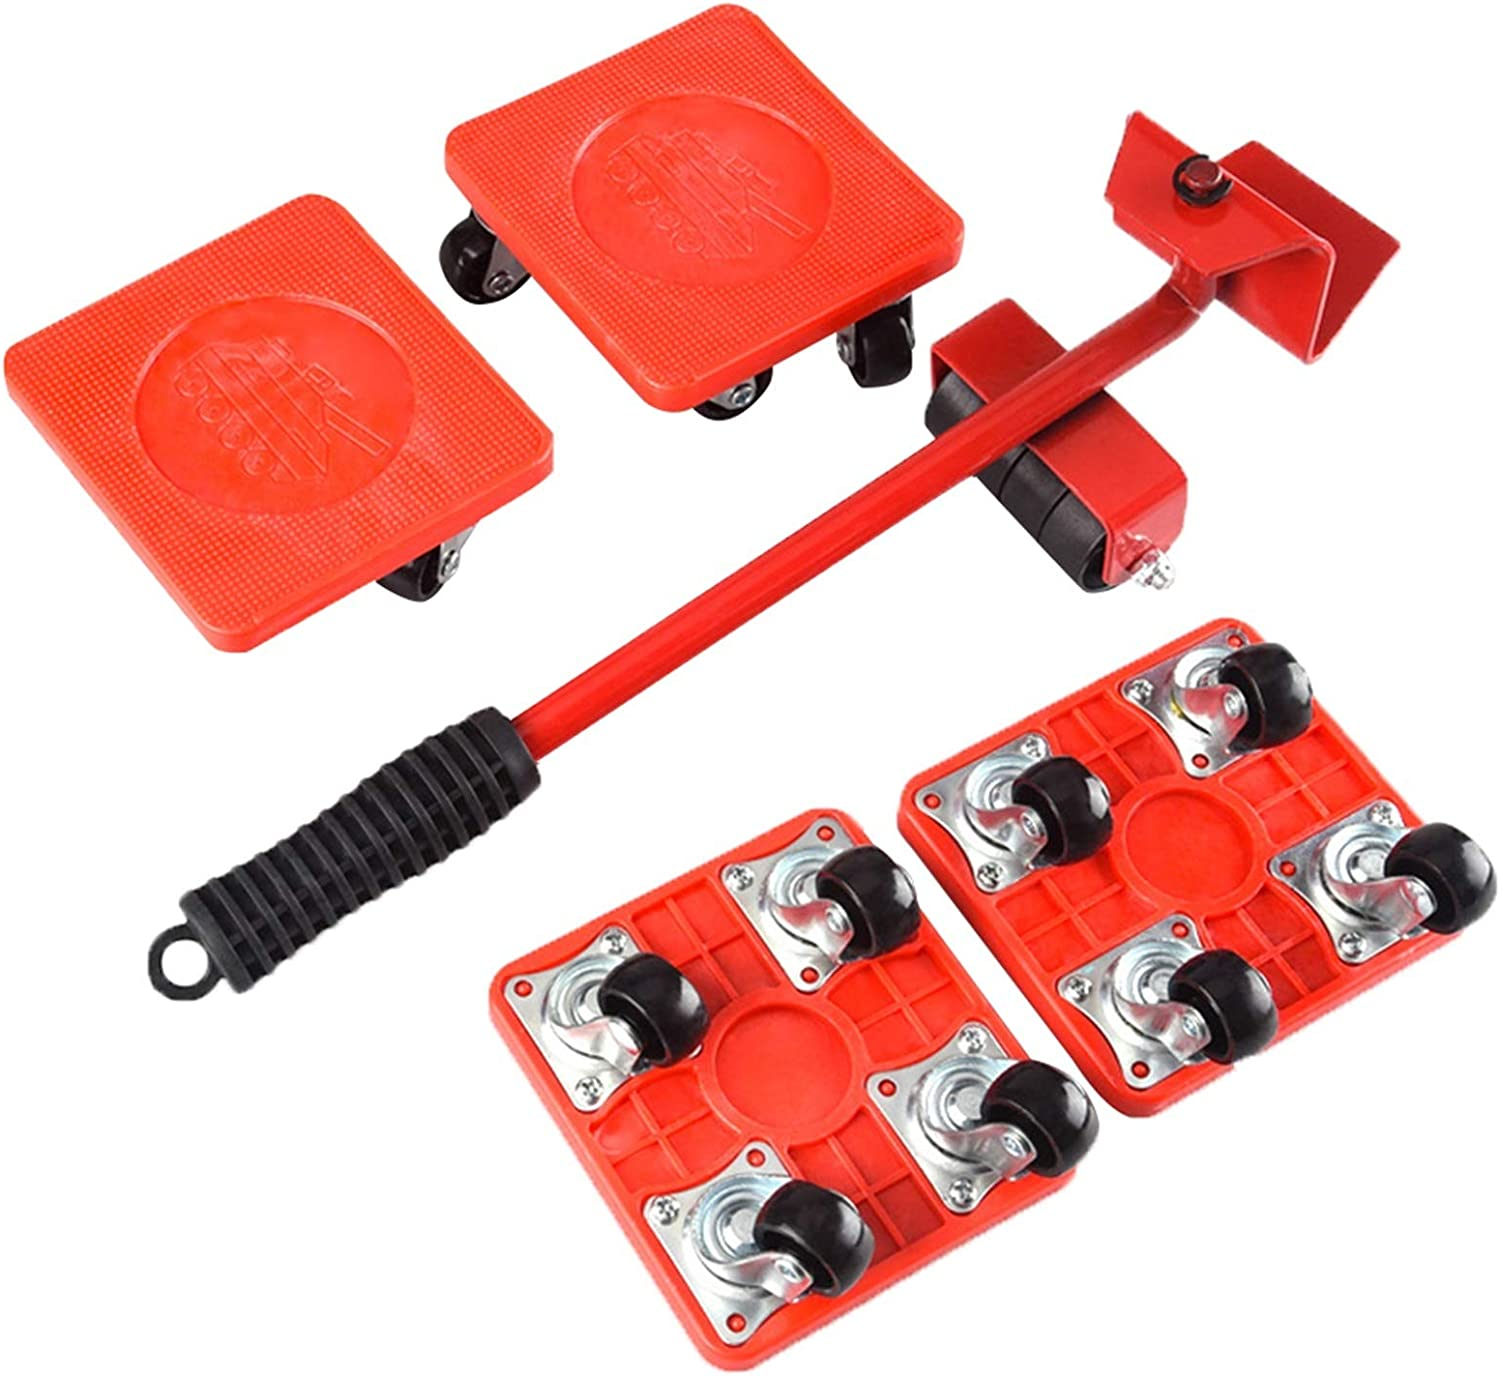 Moving Popular shop is the lowest price challenge Tools 5Pcs Set 2021 autumn and winter new Furniture Tool Transport Furnit Lifter